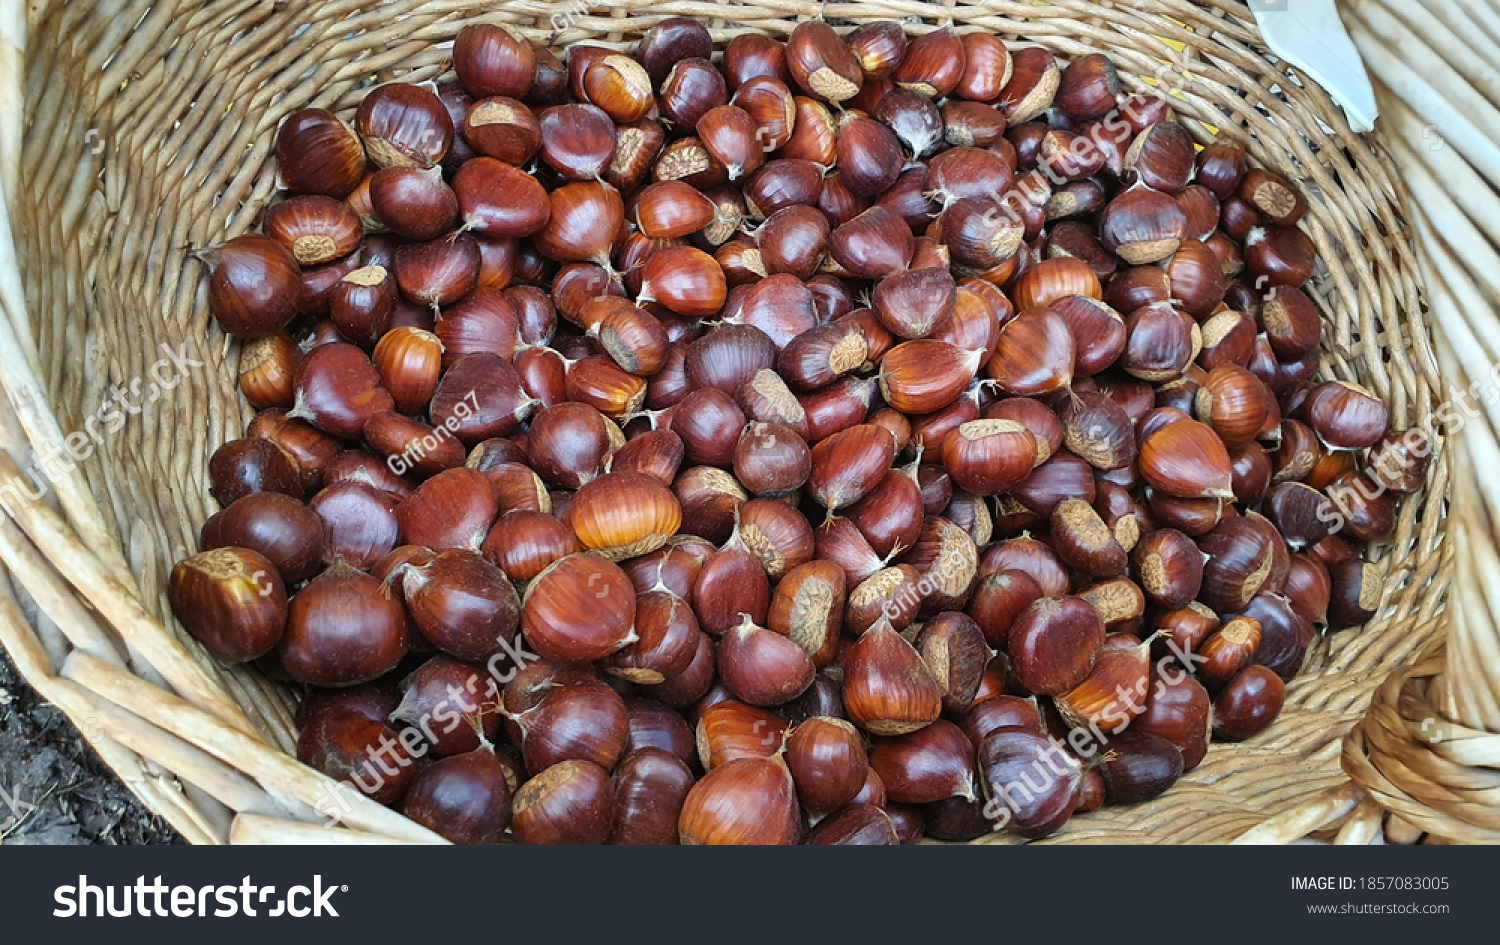 stock-photo-wicker-basket-with-chestnuts